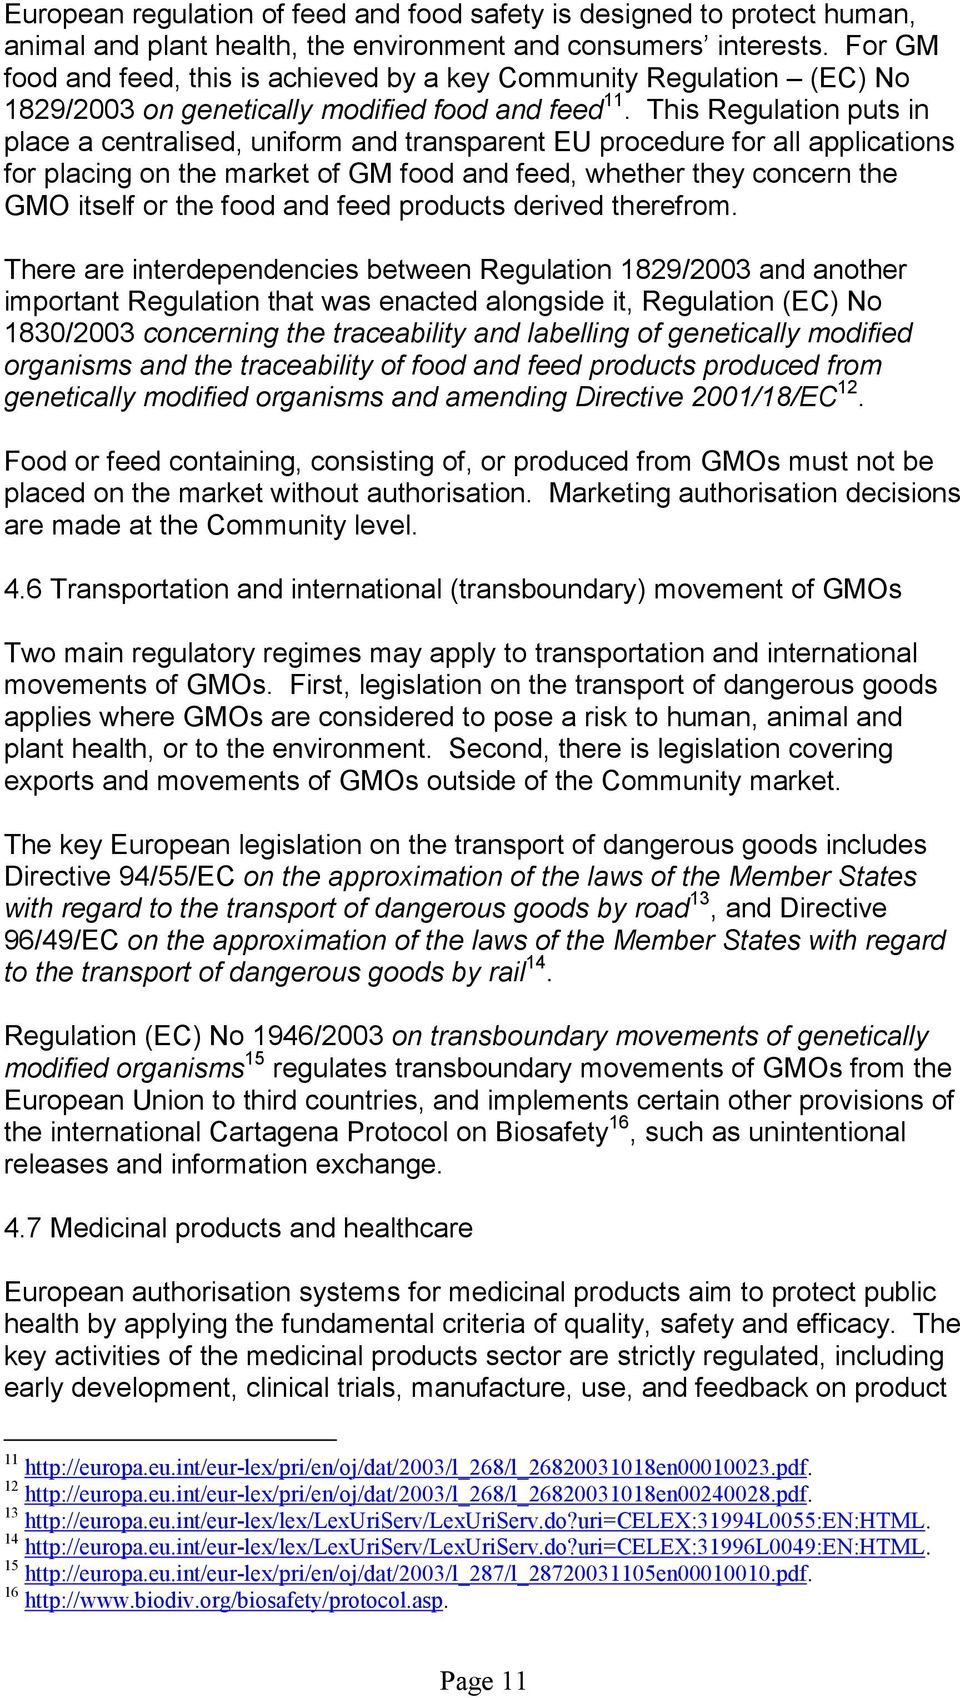 This Regulation puts in place a centralised, uniform and transparent EU procedure for all applications for placing on the market of GM food and feed, whether they concern the GMO itself or the food